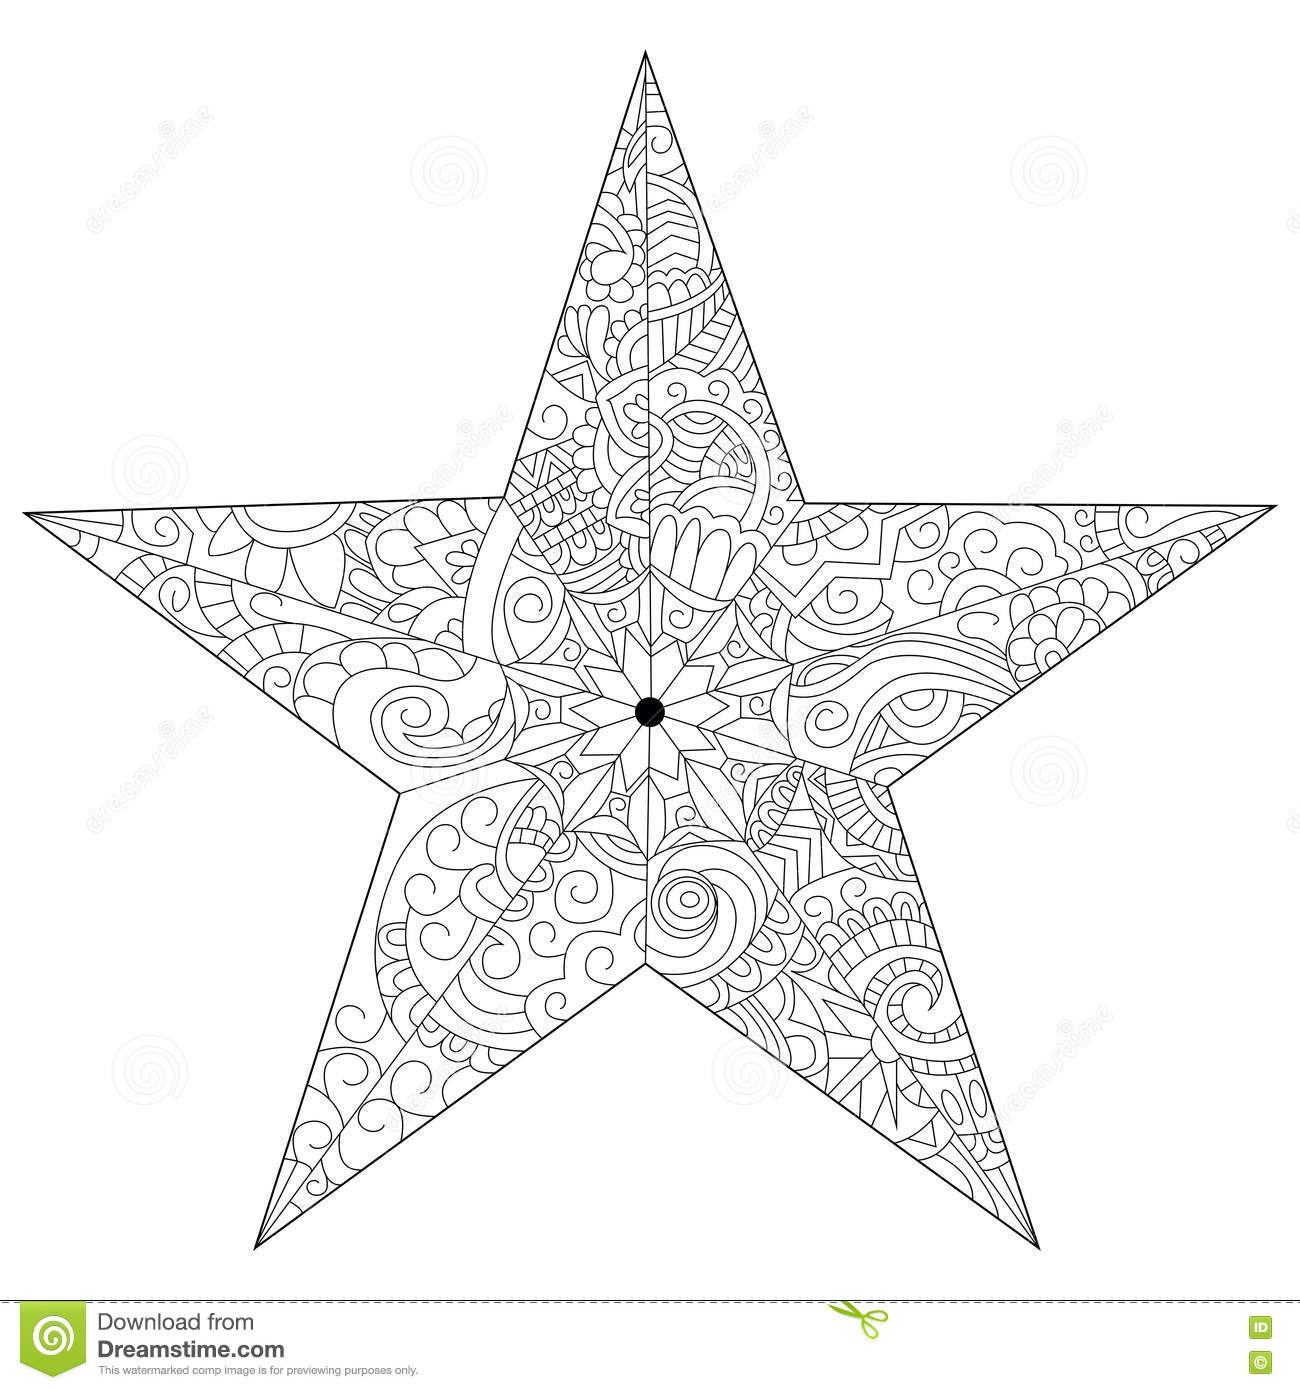 Star Coloring Vector For Adults Stock Vector Illustration Of